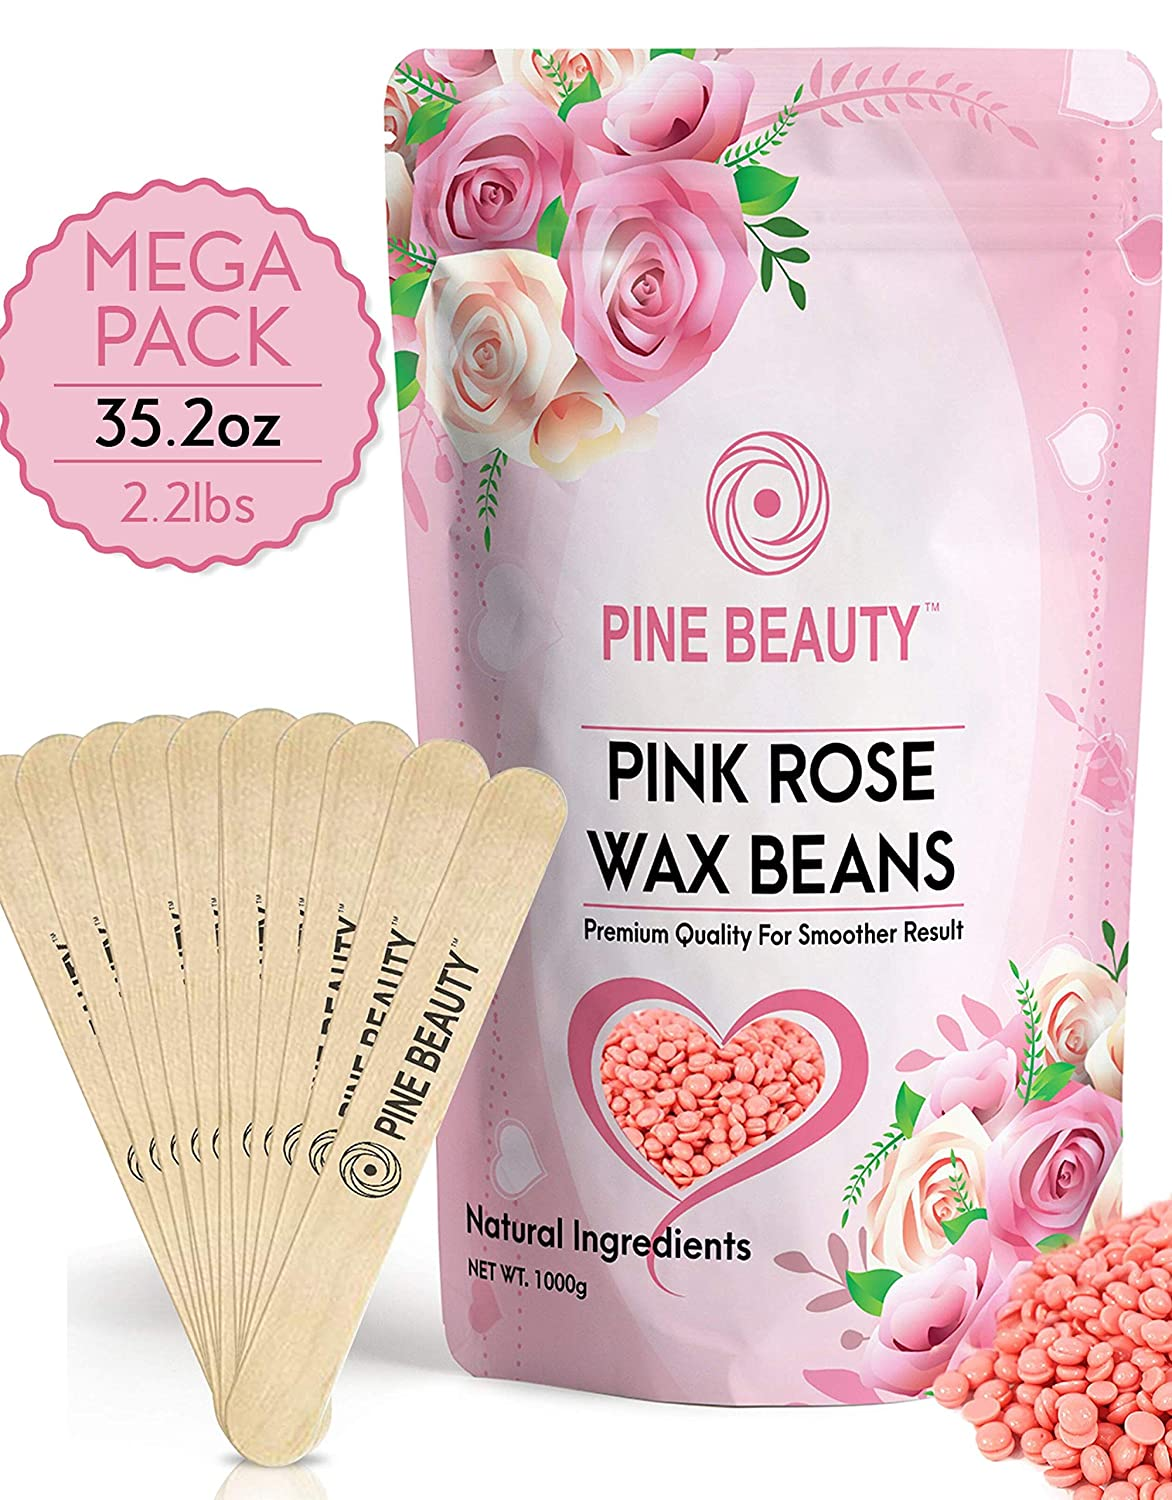 Wax Beans - Hard Wax Beads Kit for Painless Hair Removal 35.27 oz/ 2.2 lb Necessities With 10 Extra Waxing Spatula Applicator for Use With Wax Warmer and Brazilian Wax: Wax Refill 1kg / (Pink Rose)